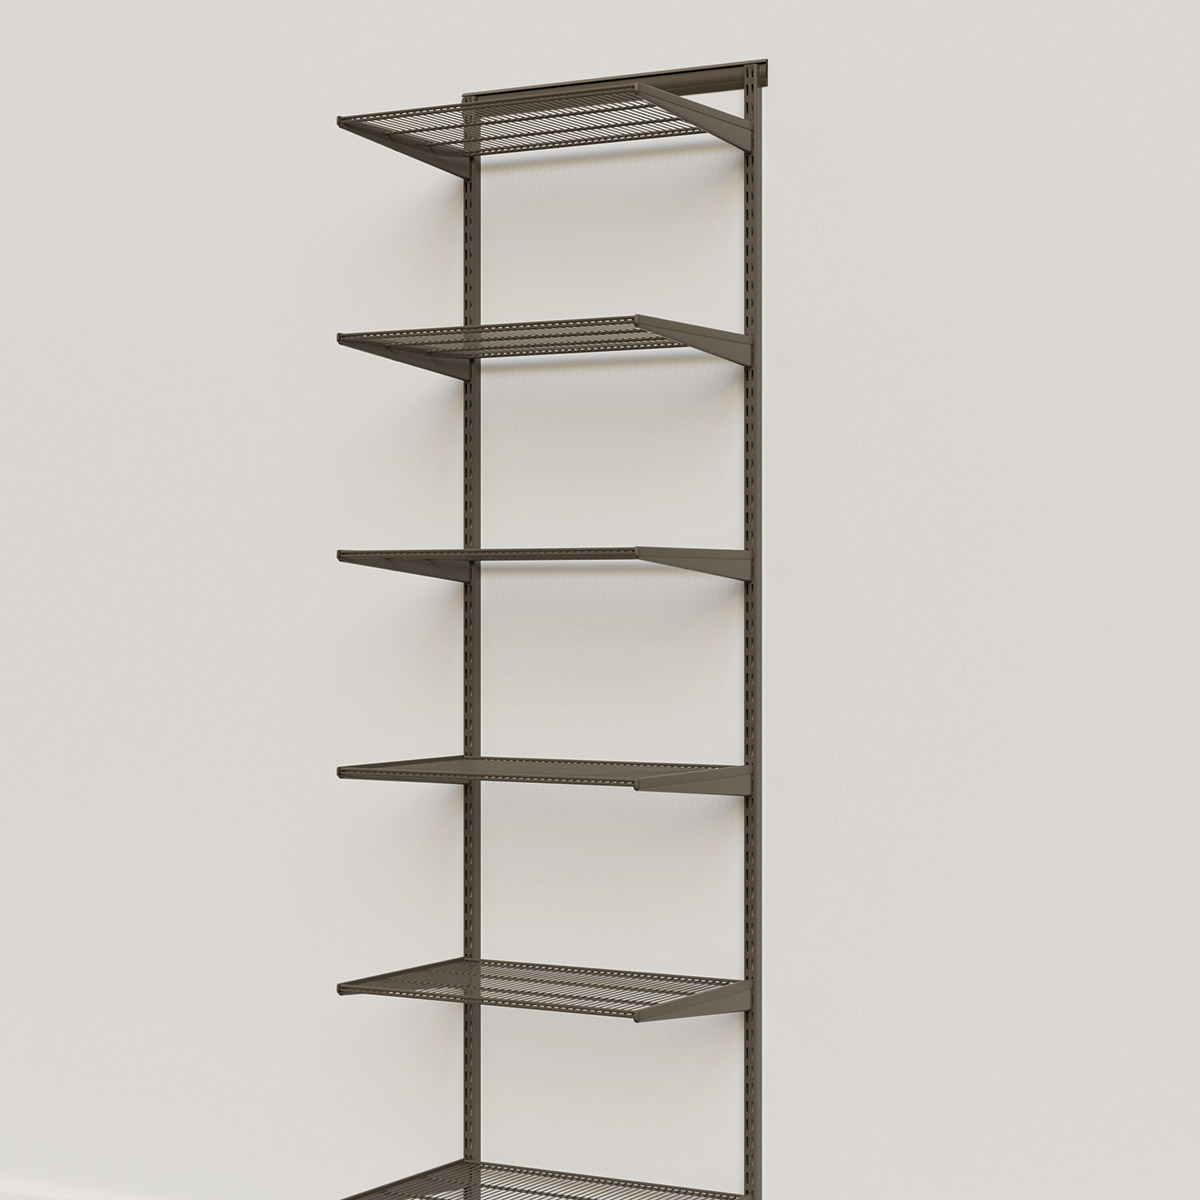 Elfa Classic Graphite 2' Basic Shelving Units for Anywhere